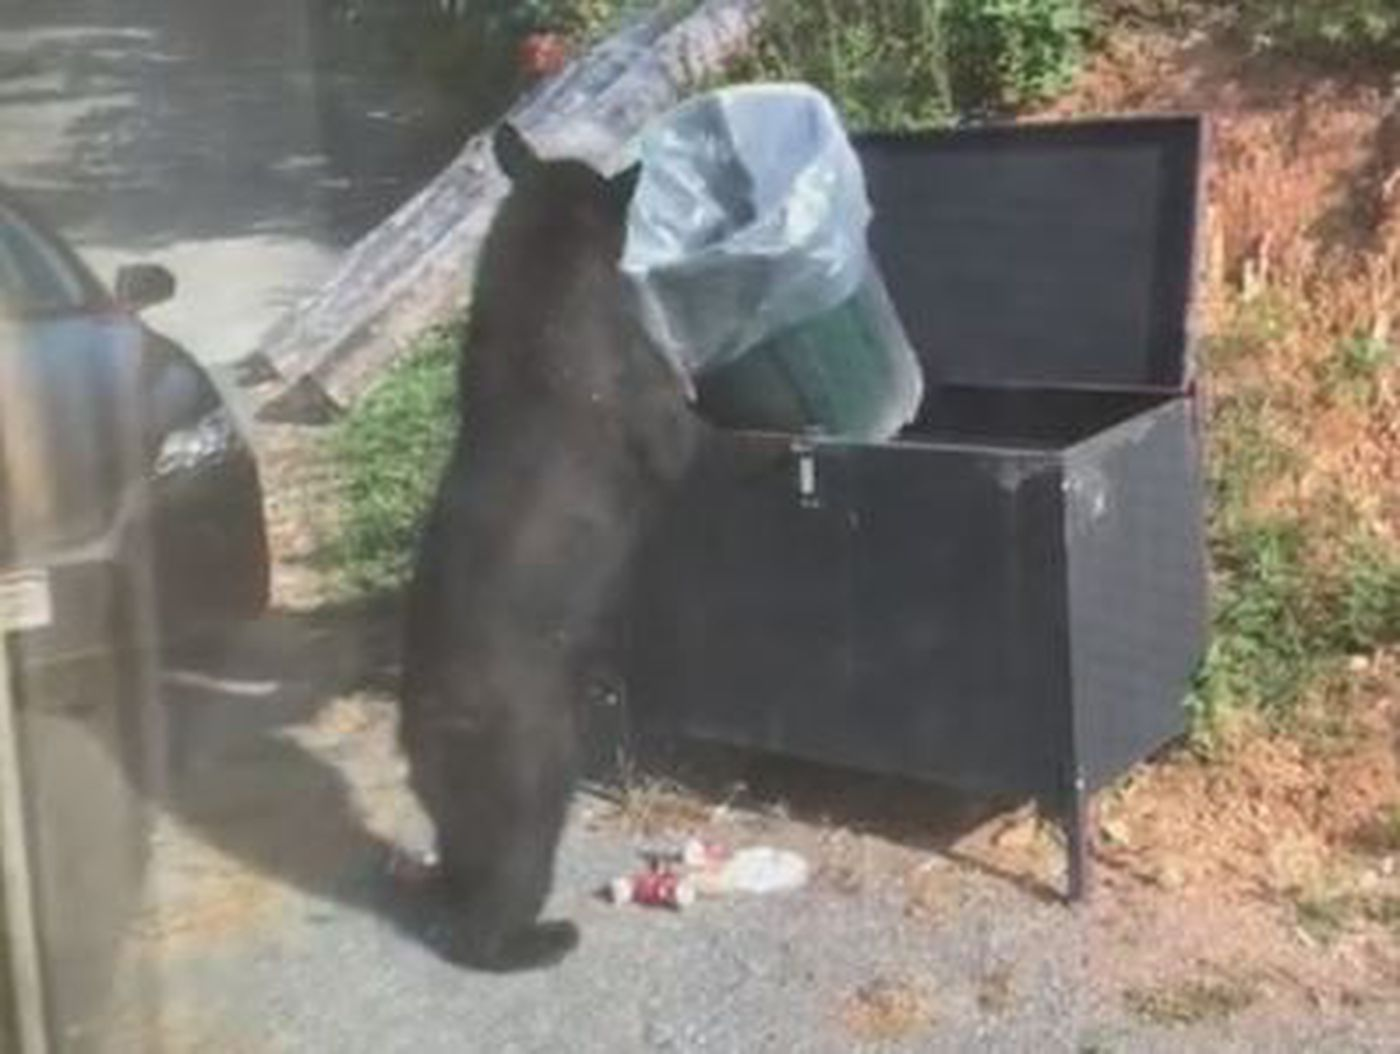 Family watches bear eat, drink Coke out of trash can while vacationing in Gatlinburg